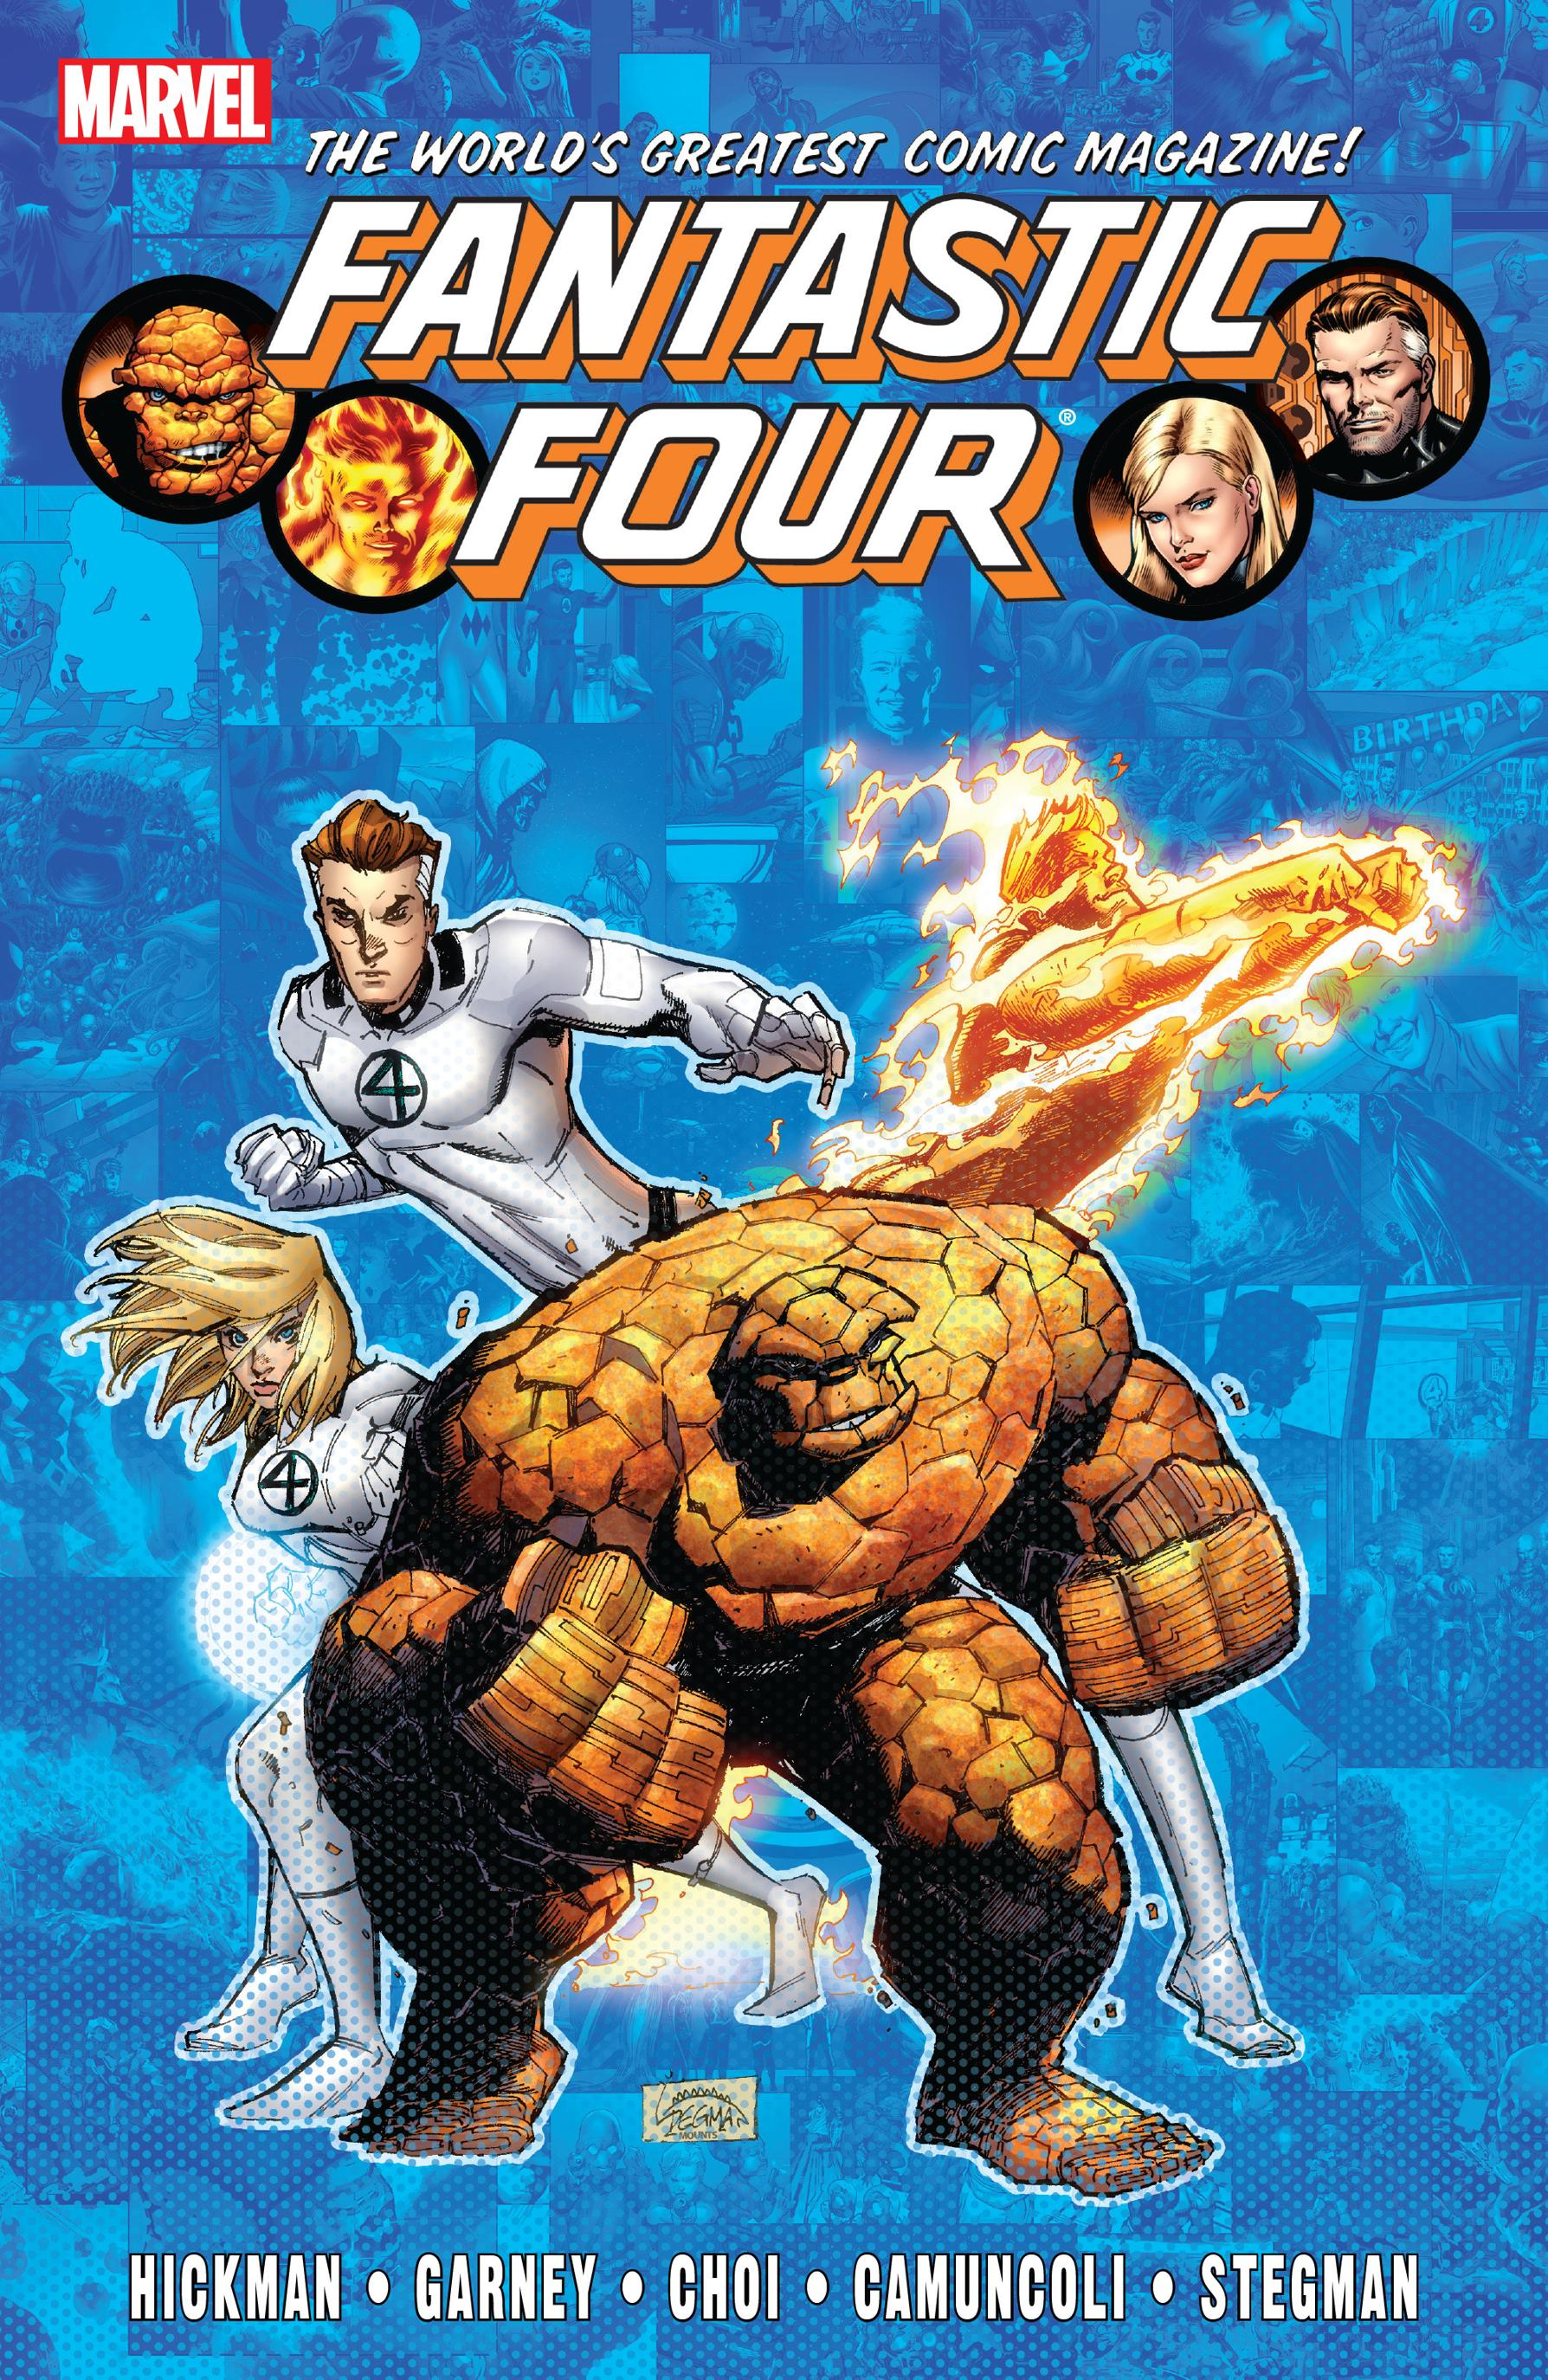 Fantastic Four By Jonathan Hickman v06 2013 Digital F Asgard